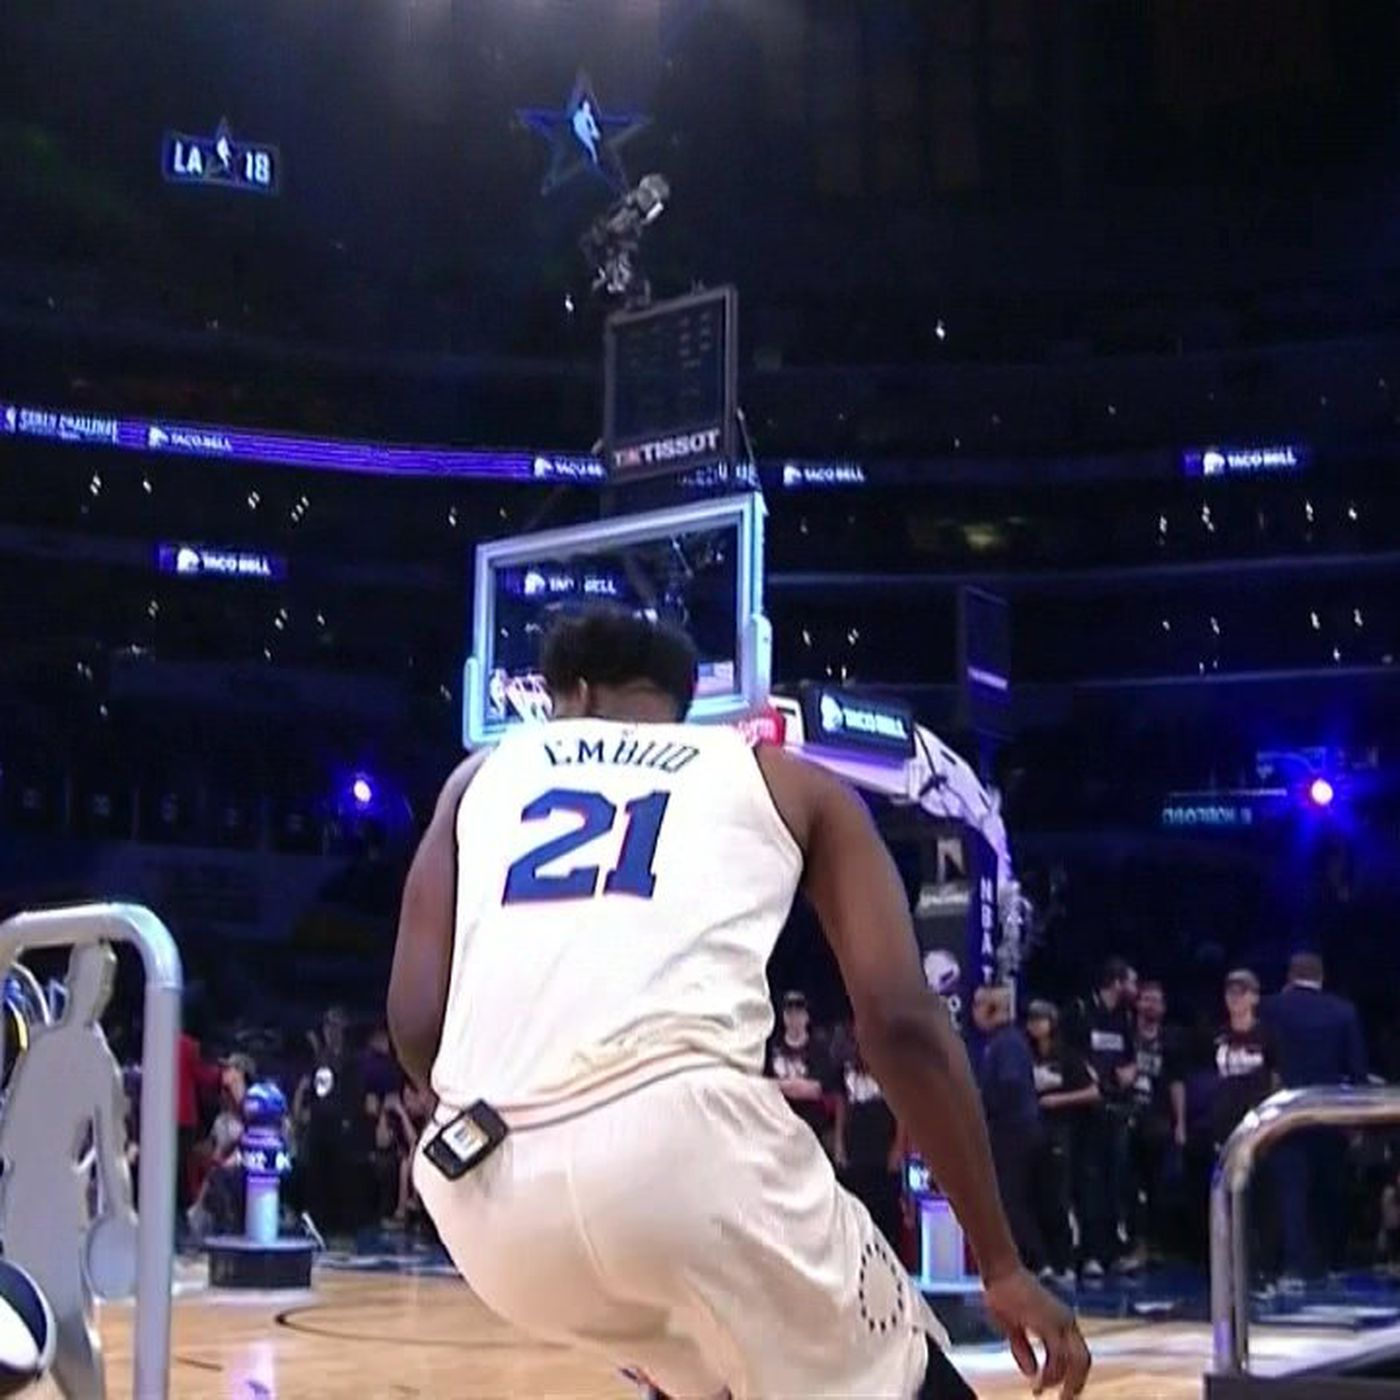 a590a0917 Joel Embiid forgot to take the tag off his shorts during NBA All-Star  Saturday - SBNation.com